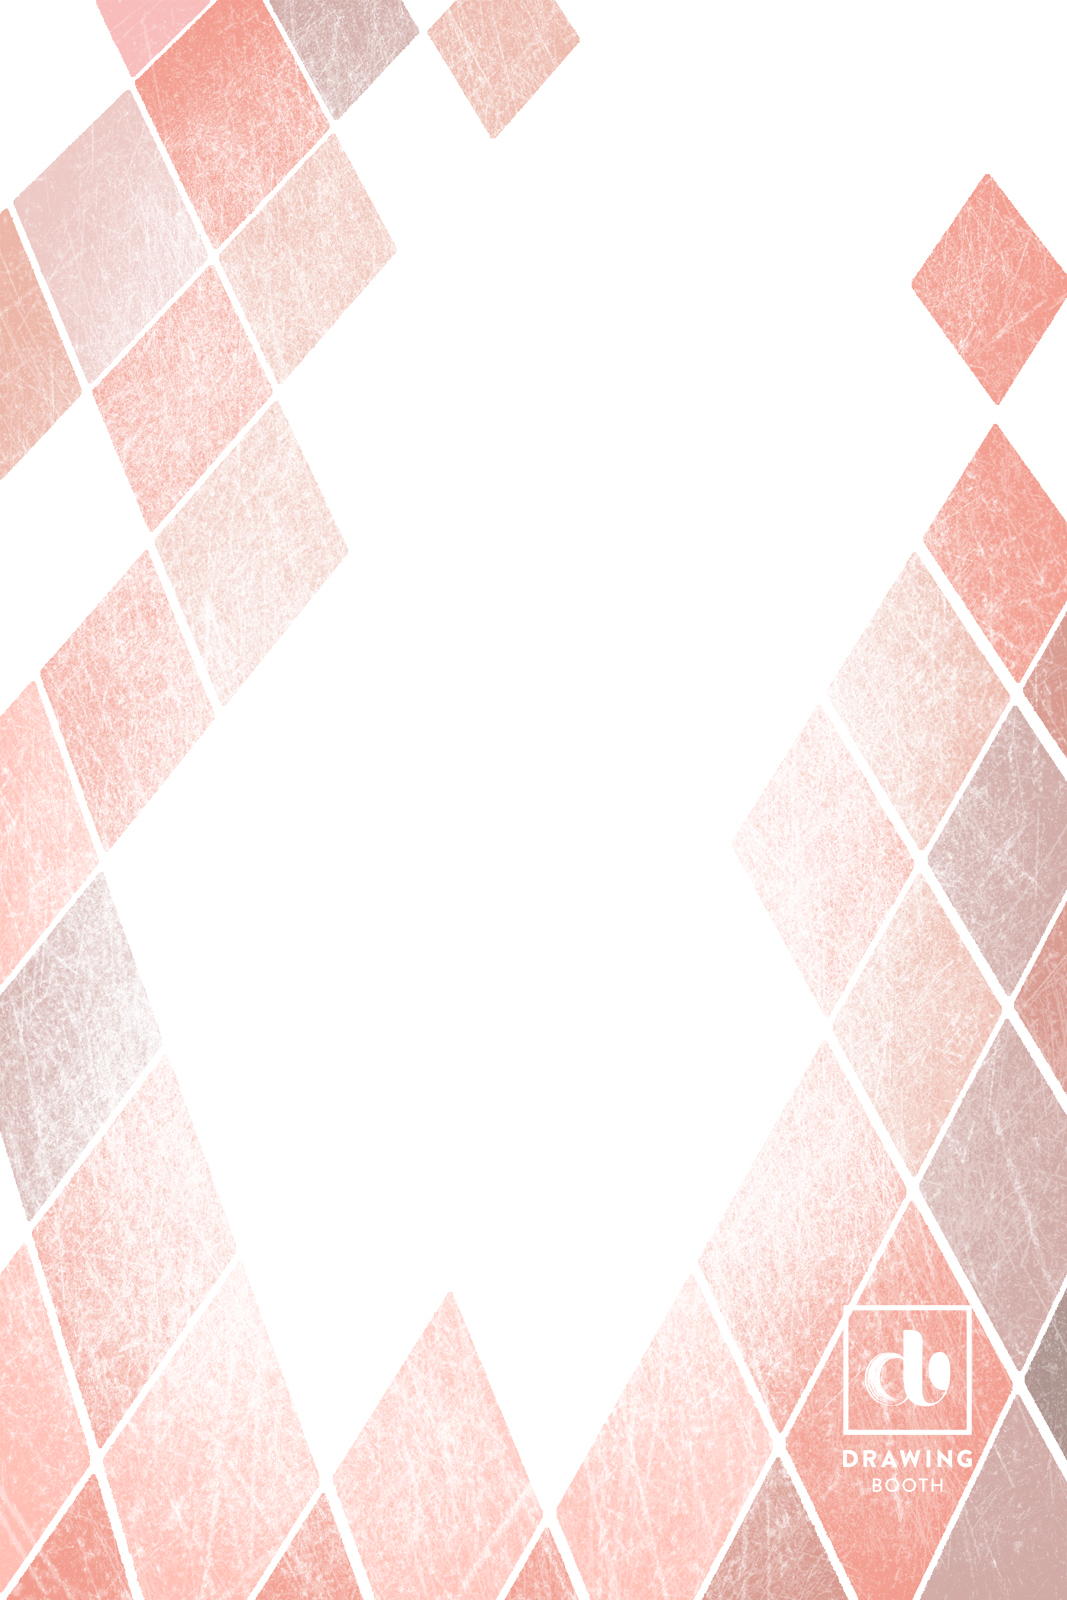 Pink Tile (Available for use)